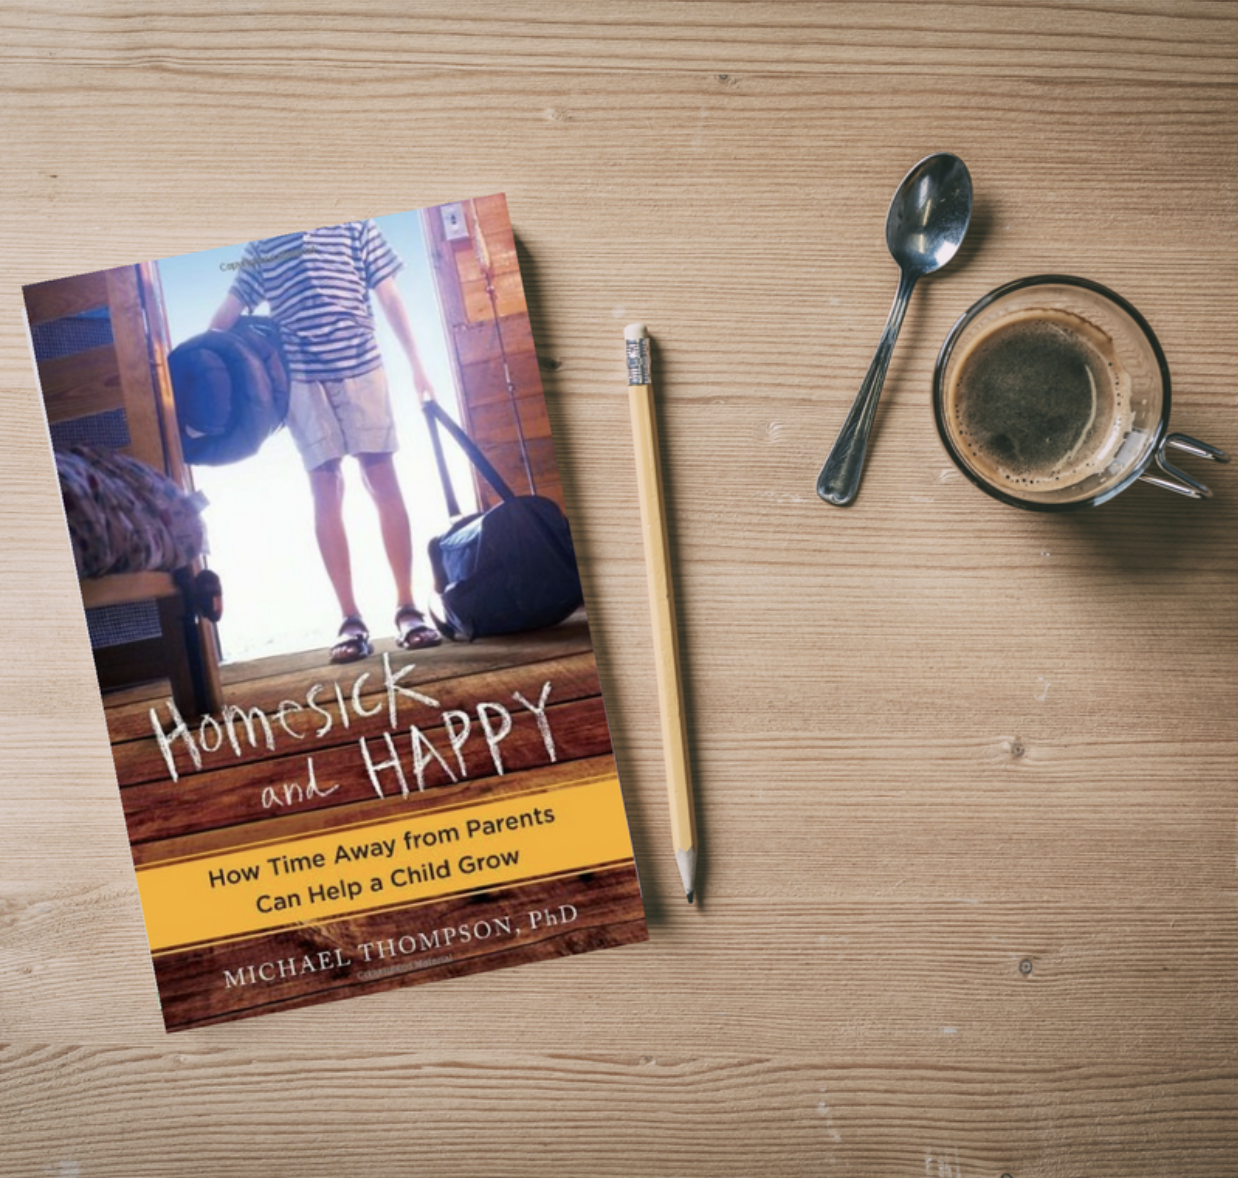 homesick-and-happy-book-discussion